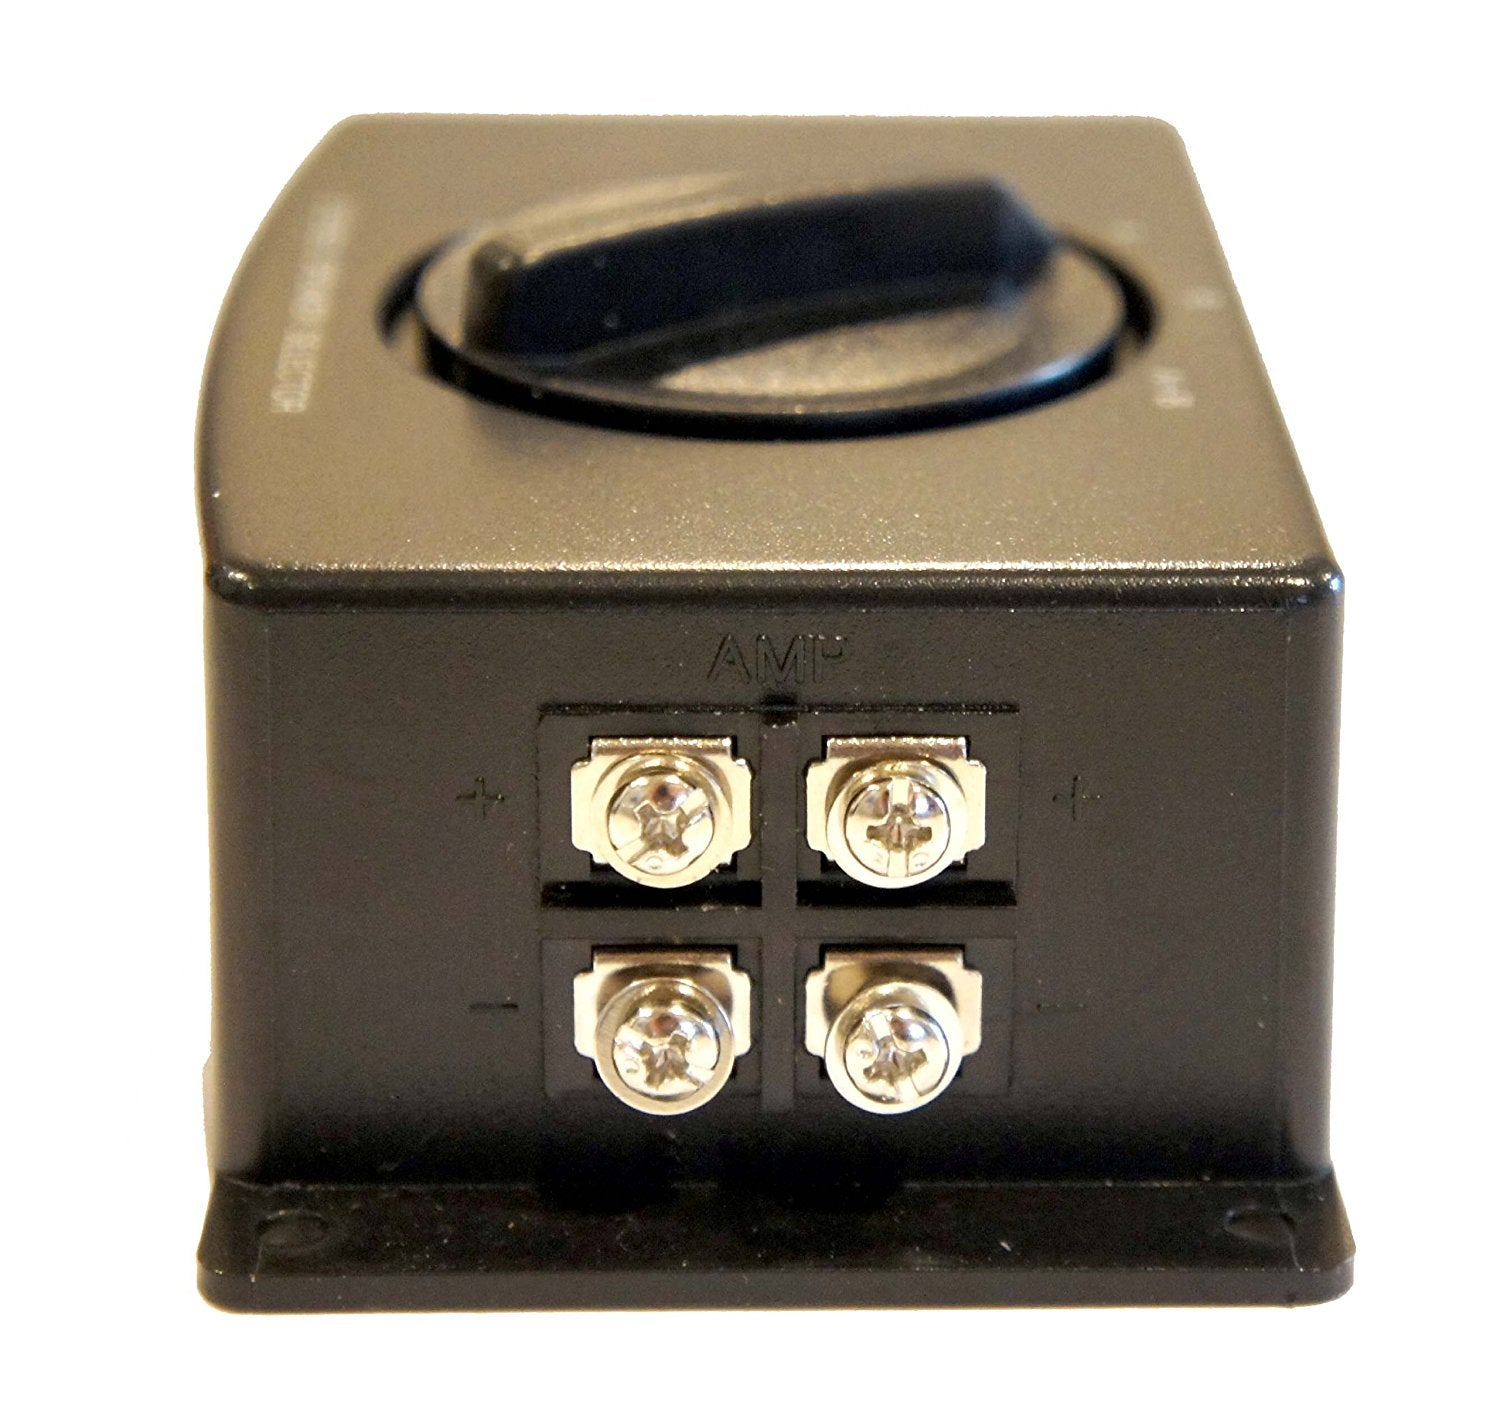 Car Vehicle Electronics Tagged Selector Switch Boxes Vazlo 2 Way Speaker A B Stereo Switcher Combiner Black Box